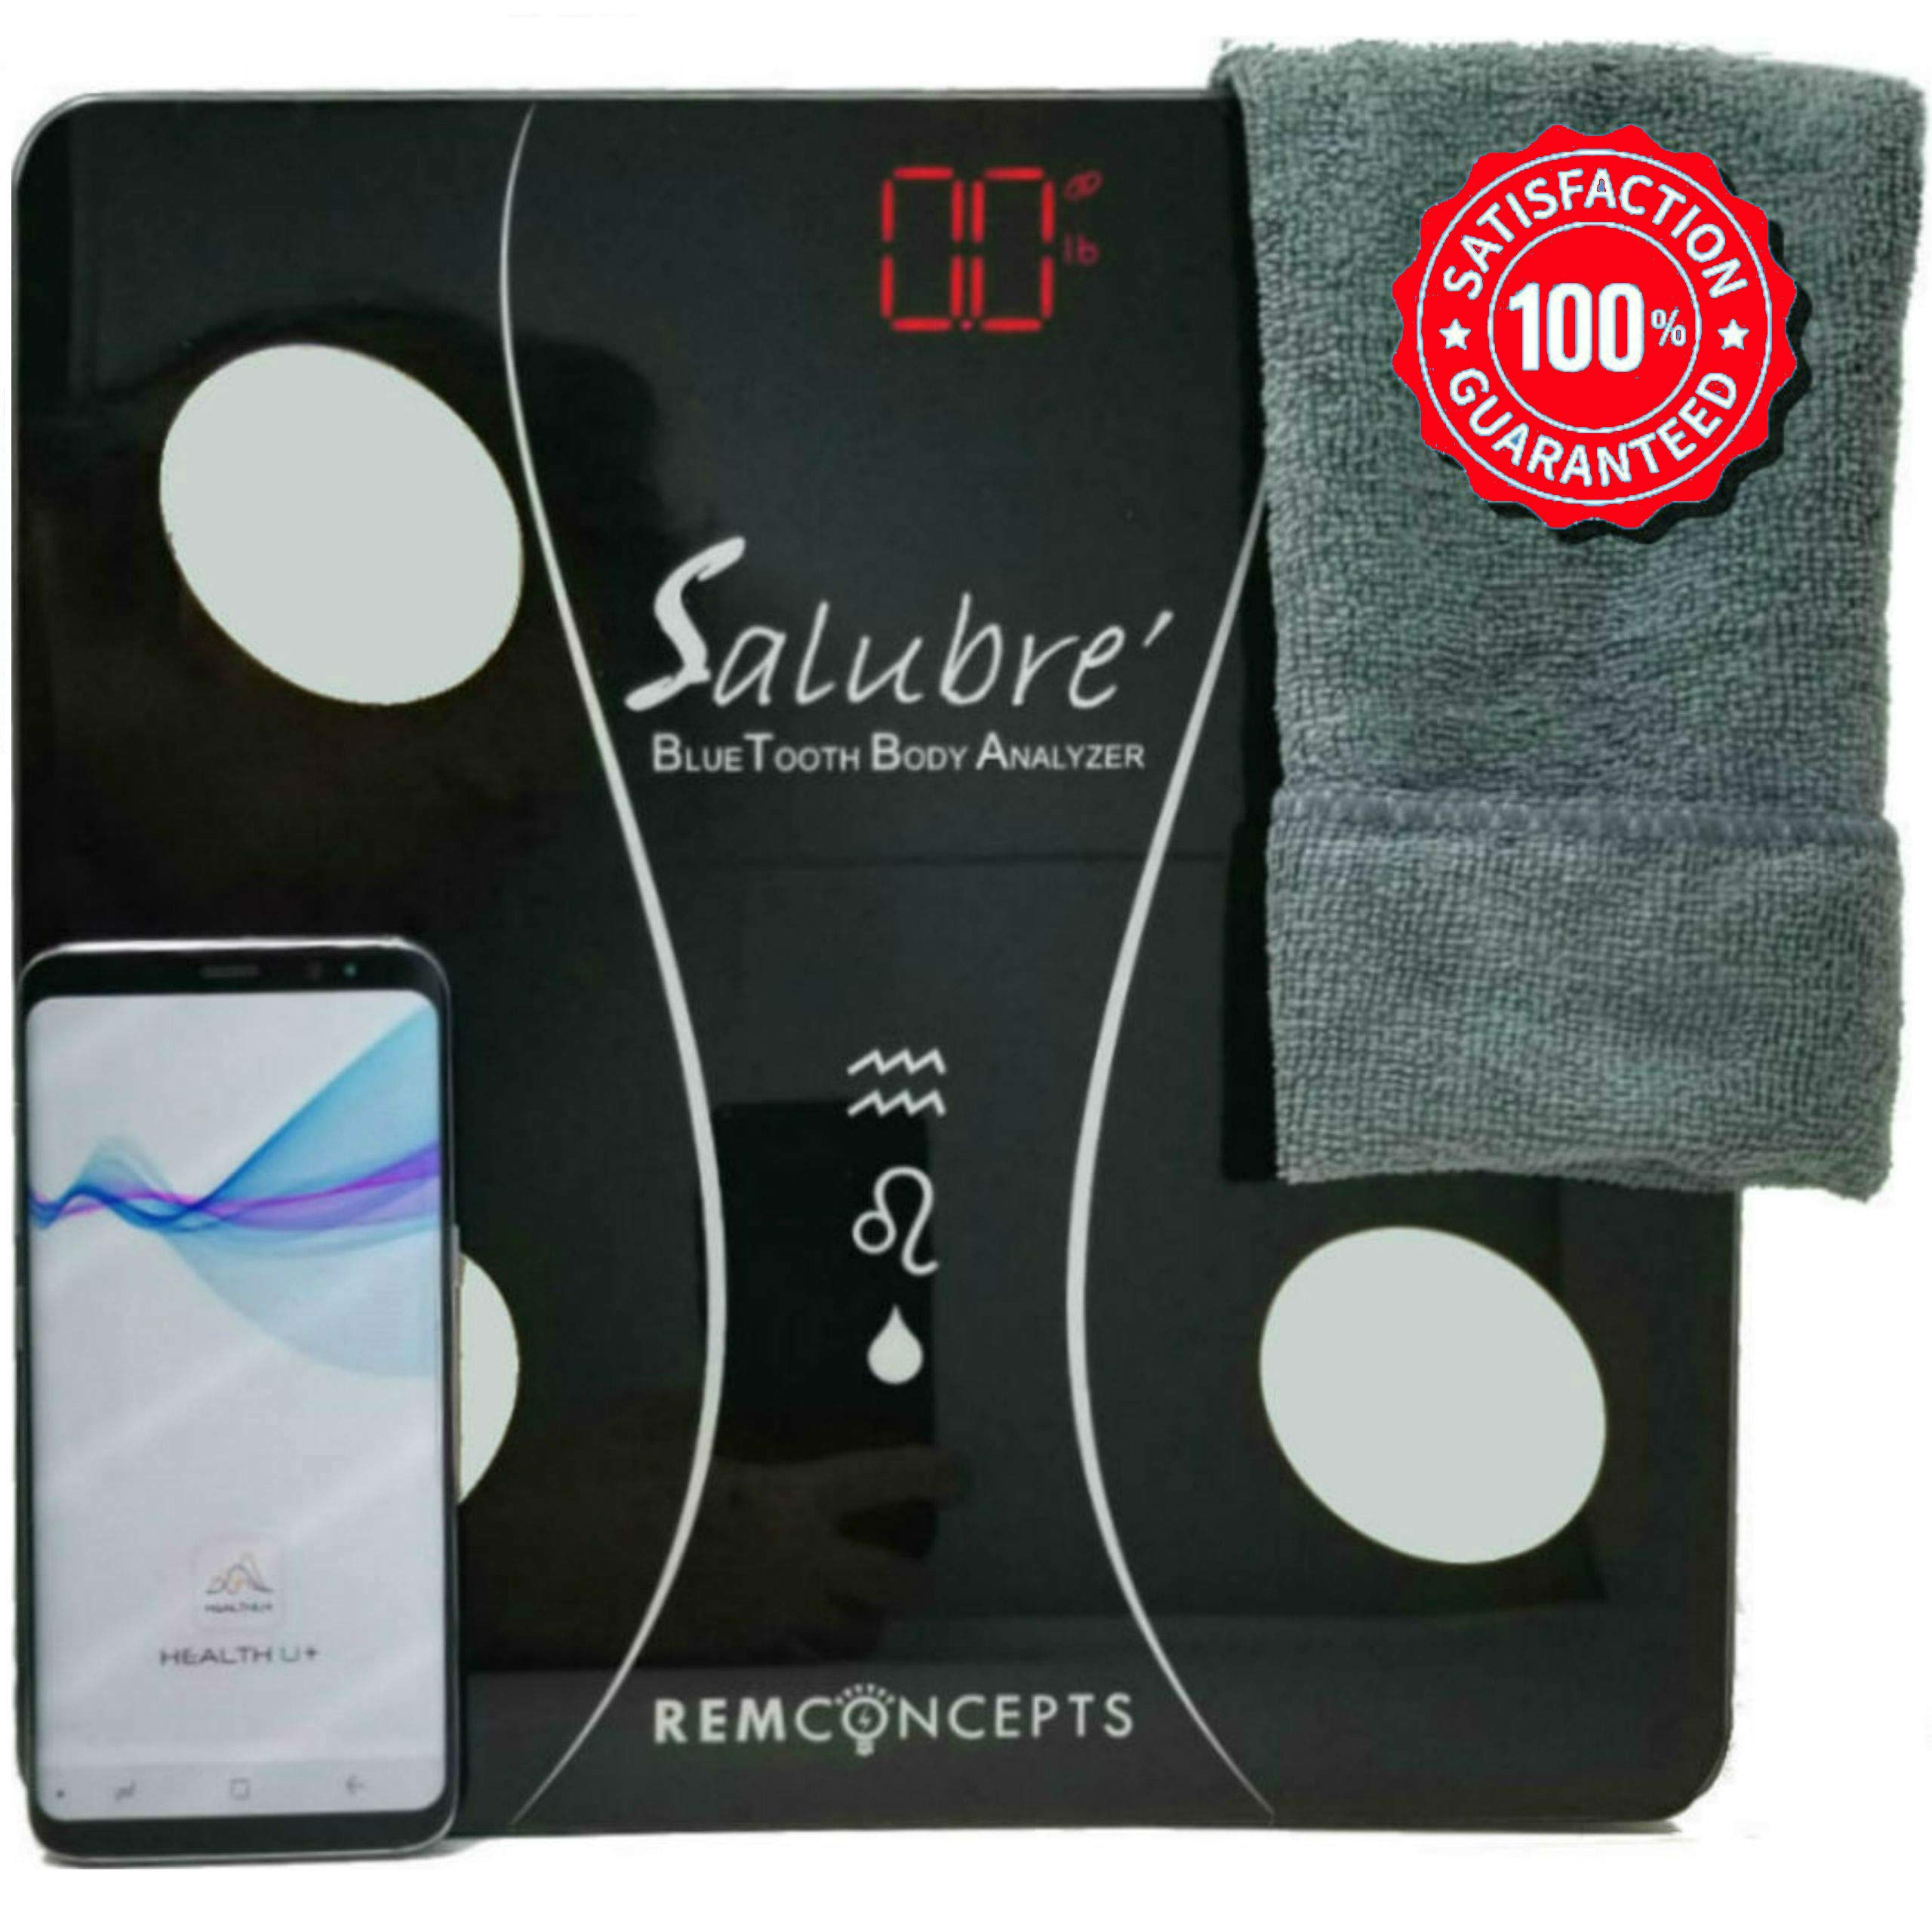 Body Fat Scale/Body Analyzer Scale/Body Composition Scale - Supports Fitness and Weight Loss with Fitness Tracker App - for Apple or Android Smart Phone Users